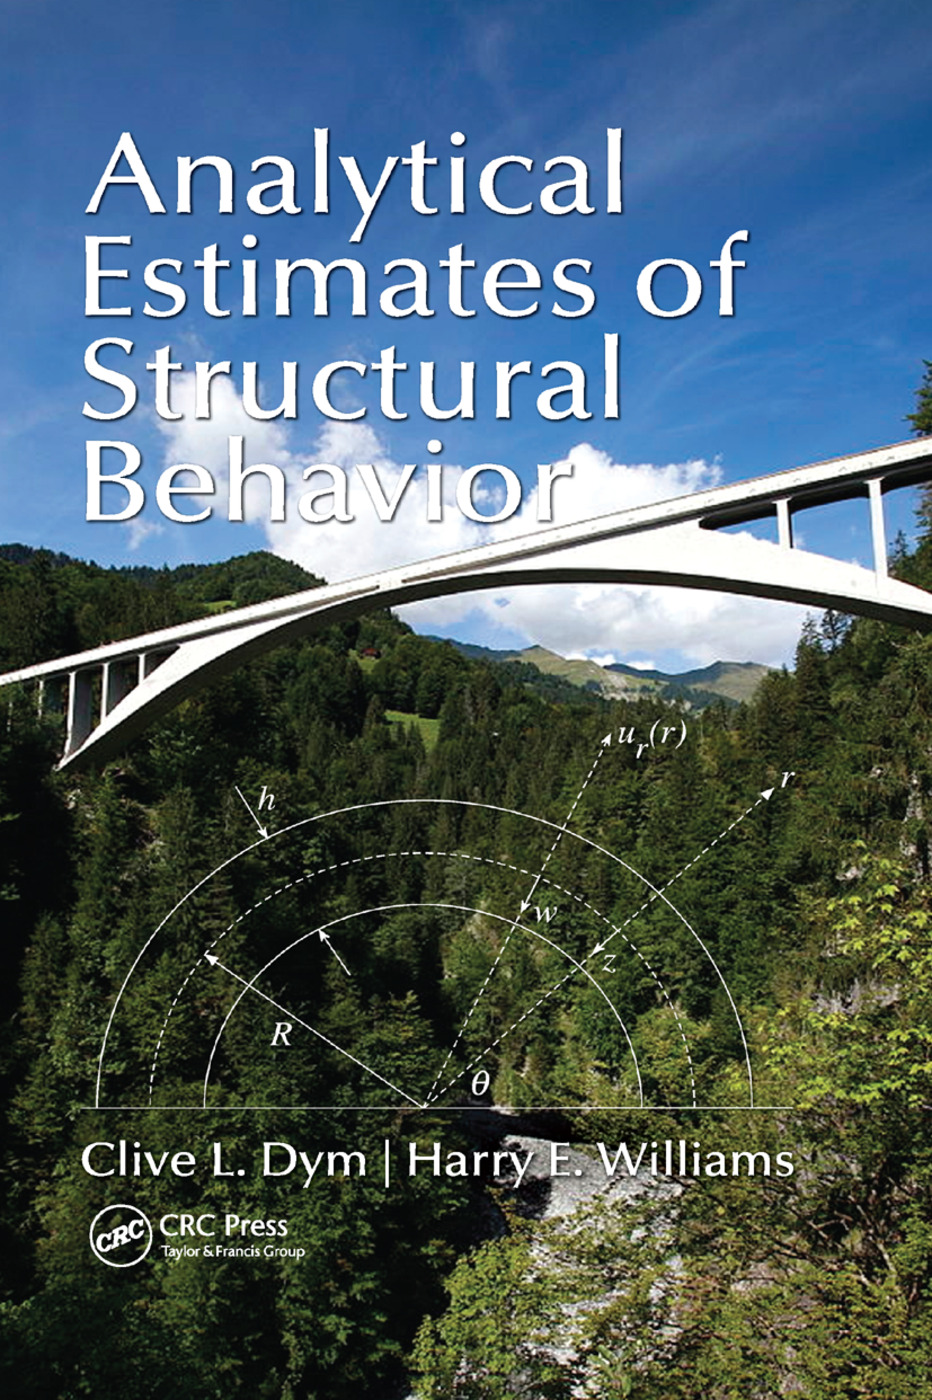 Analytical Estimates of Structural Behavior